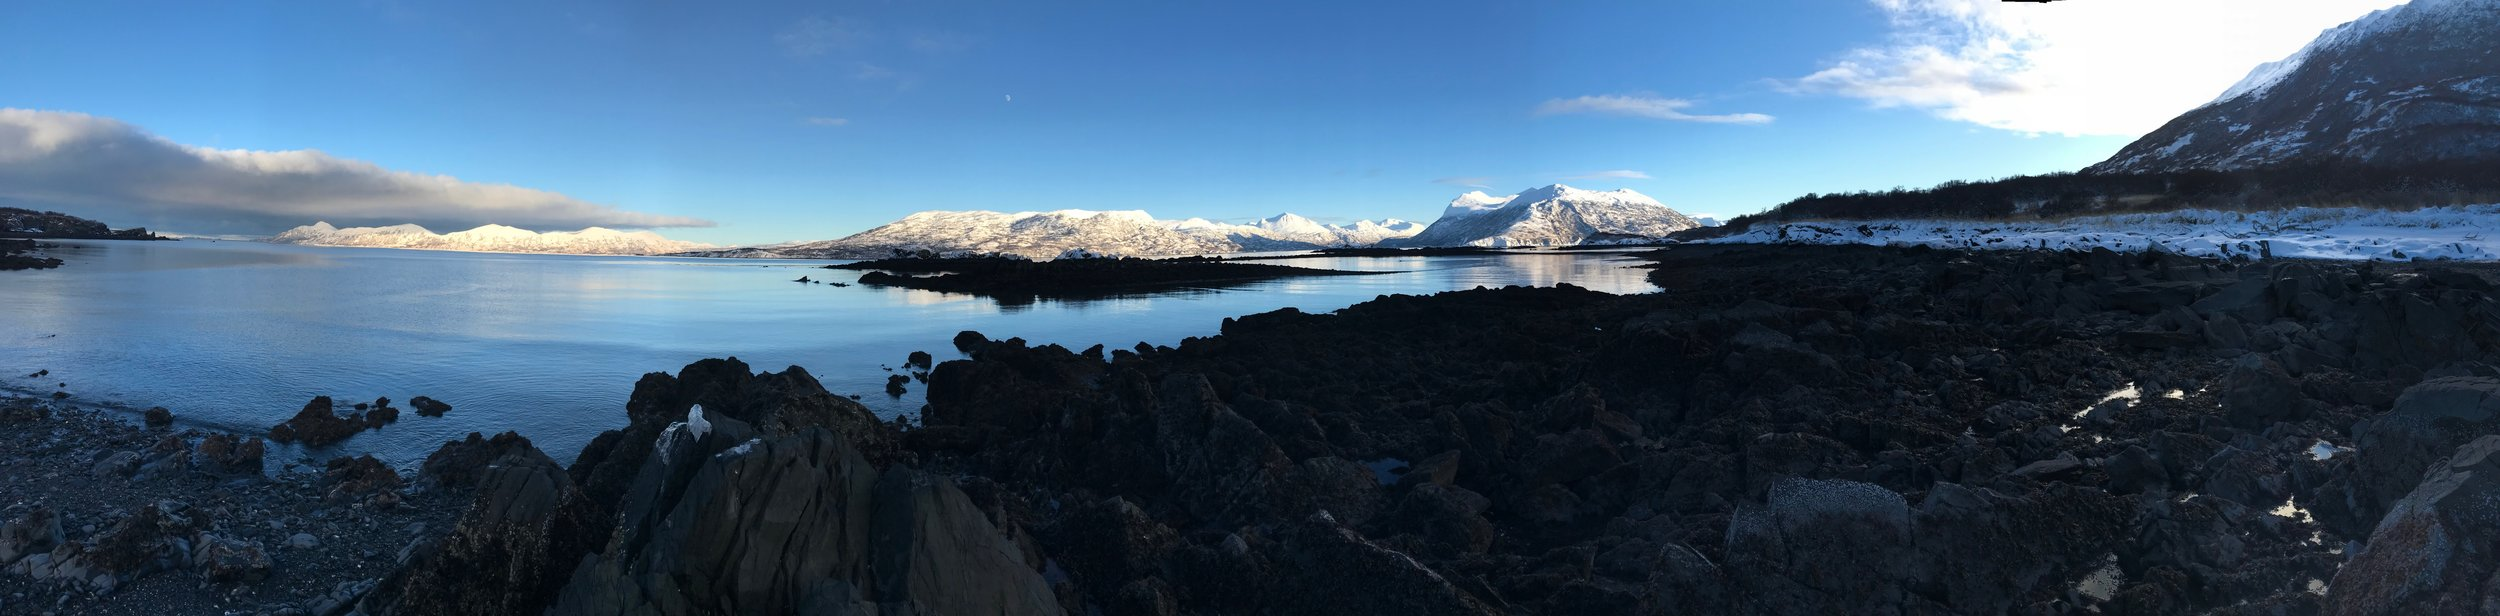 Mountains of Kodiak Island rise up seemingly straight from the ocean.